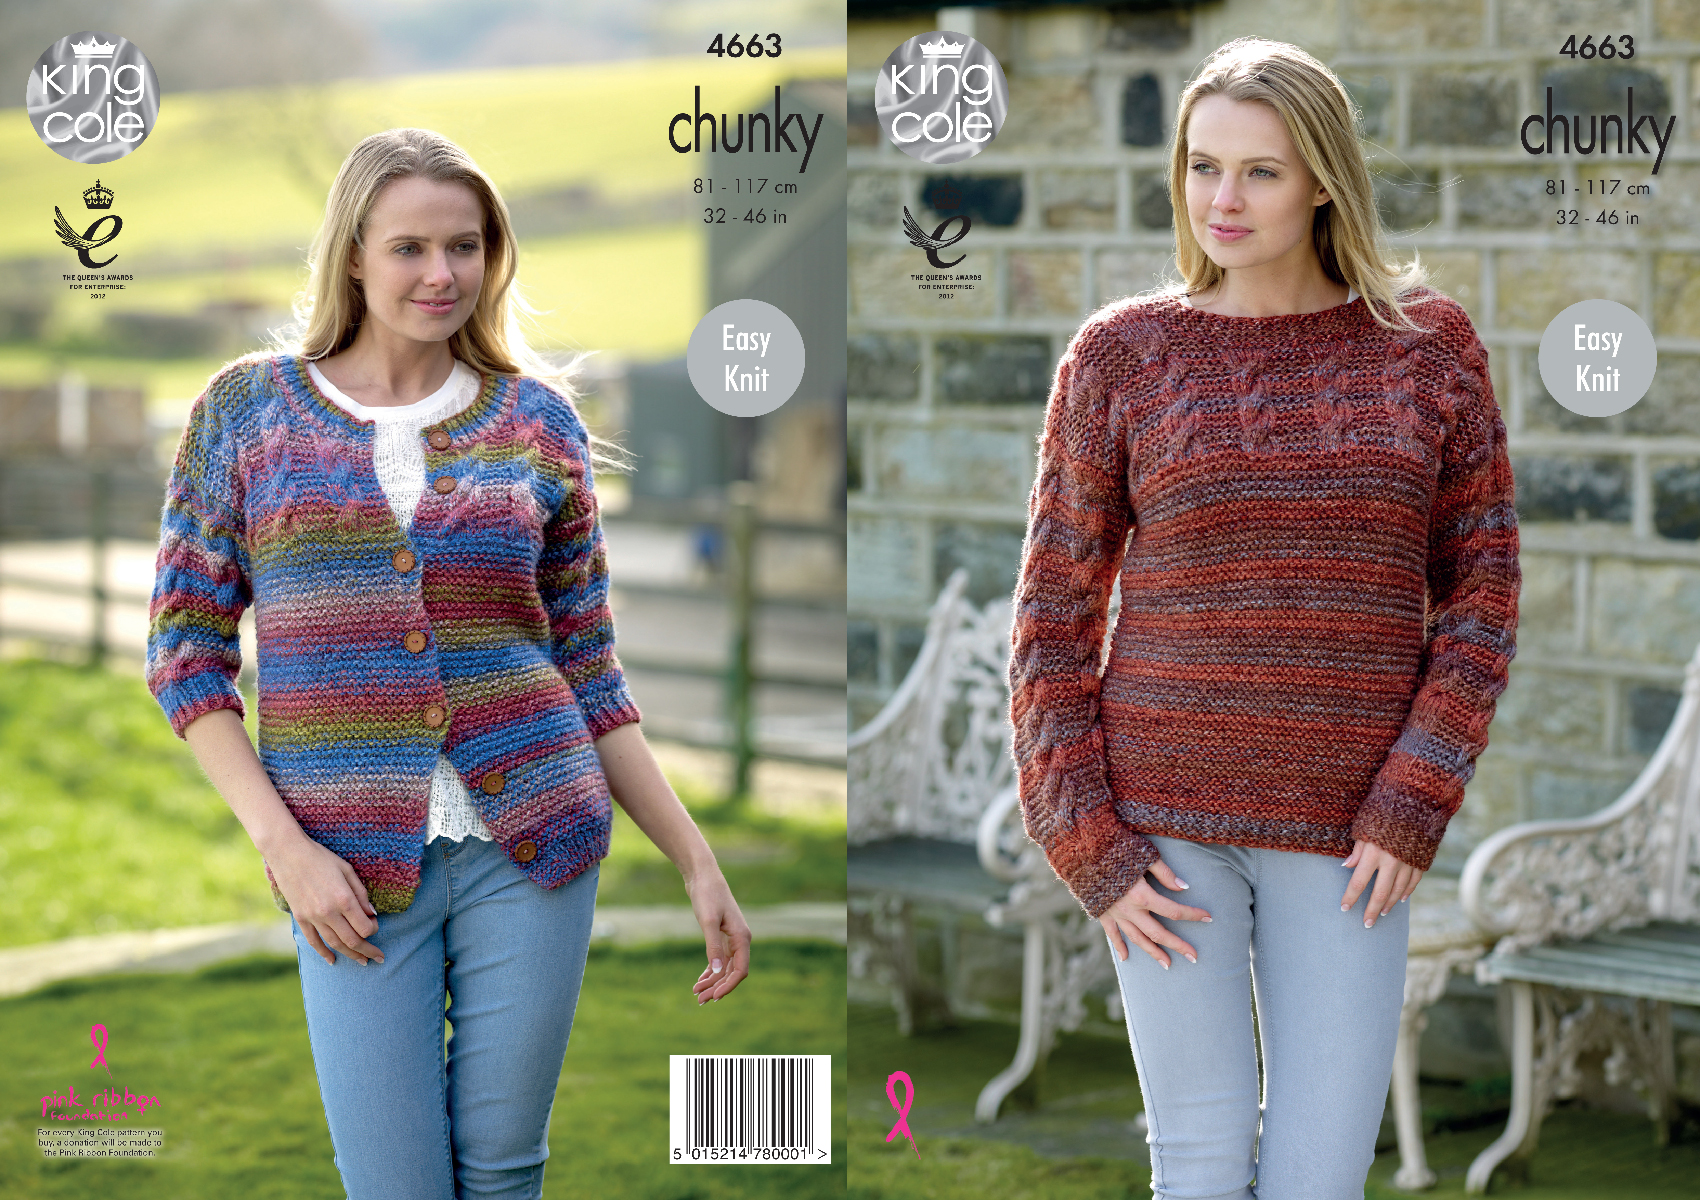 Easy cable knit cardigan sweater knitting pattern king cole easy cable knit cardigan sweater knitting pattern king cole ladies chunky 4663 bankloansurffo Gallery